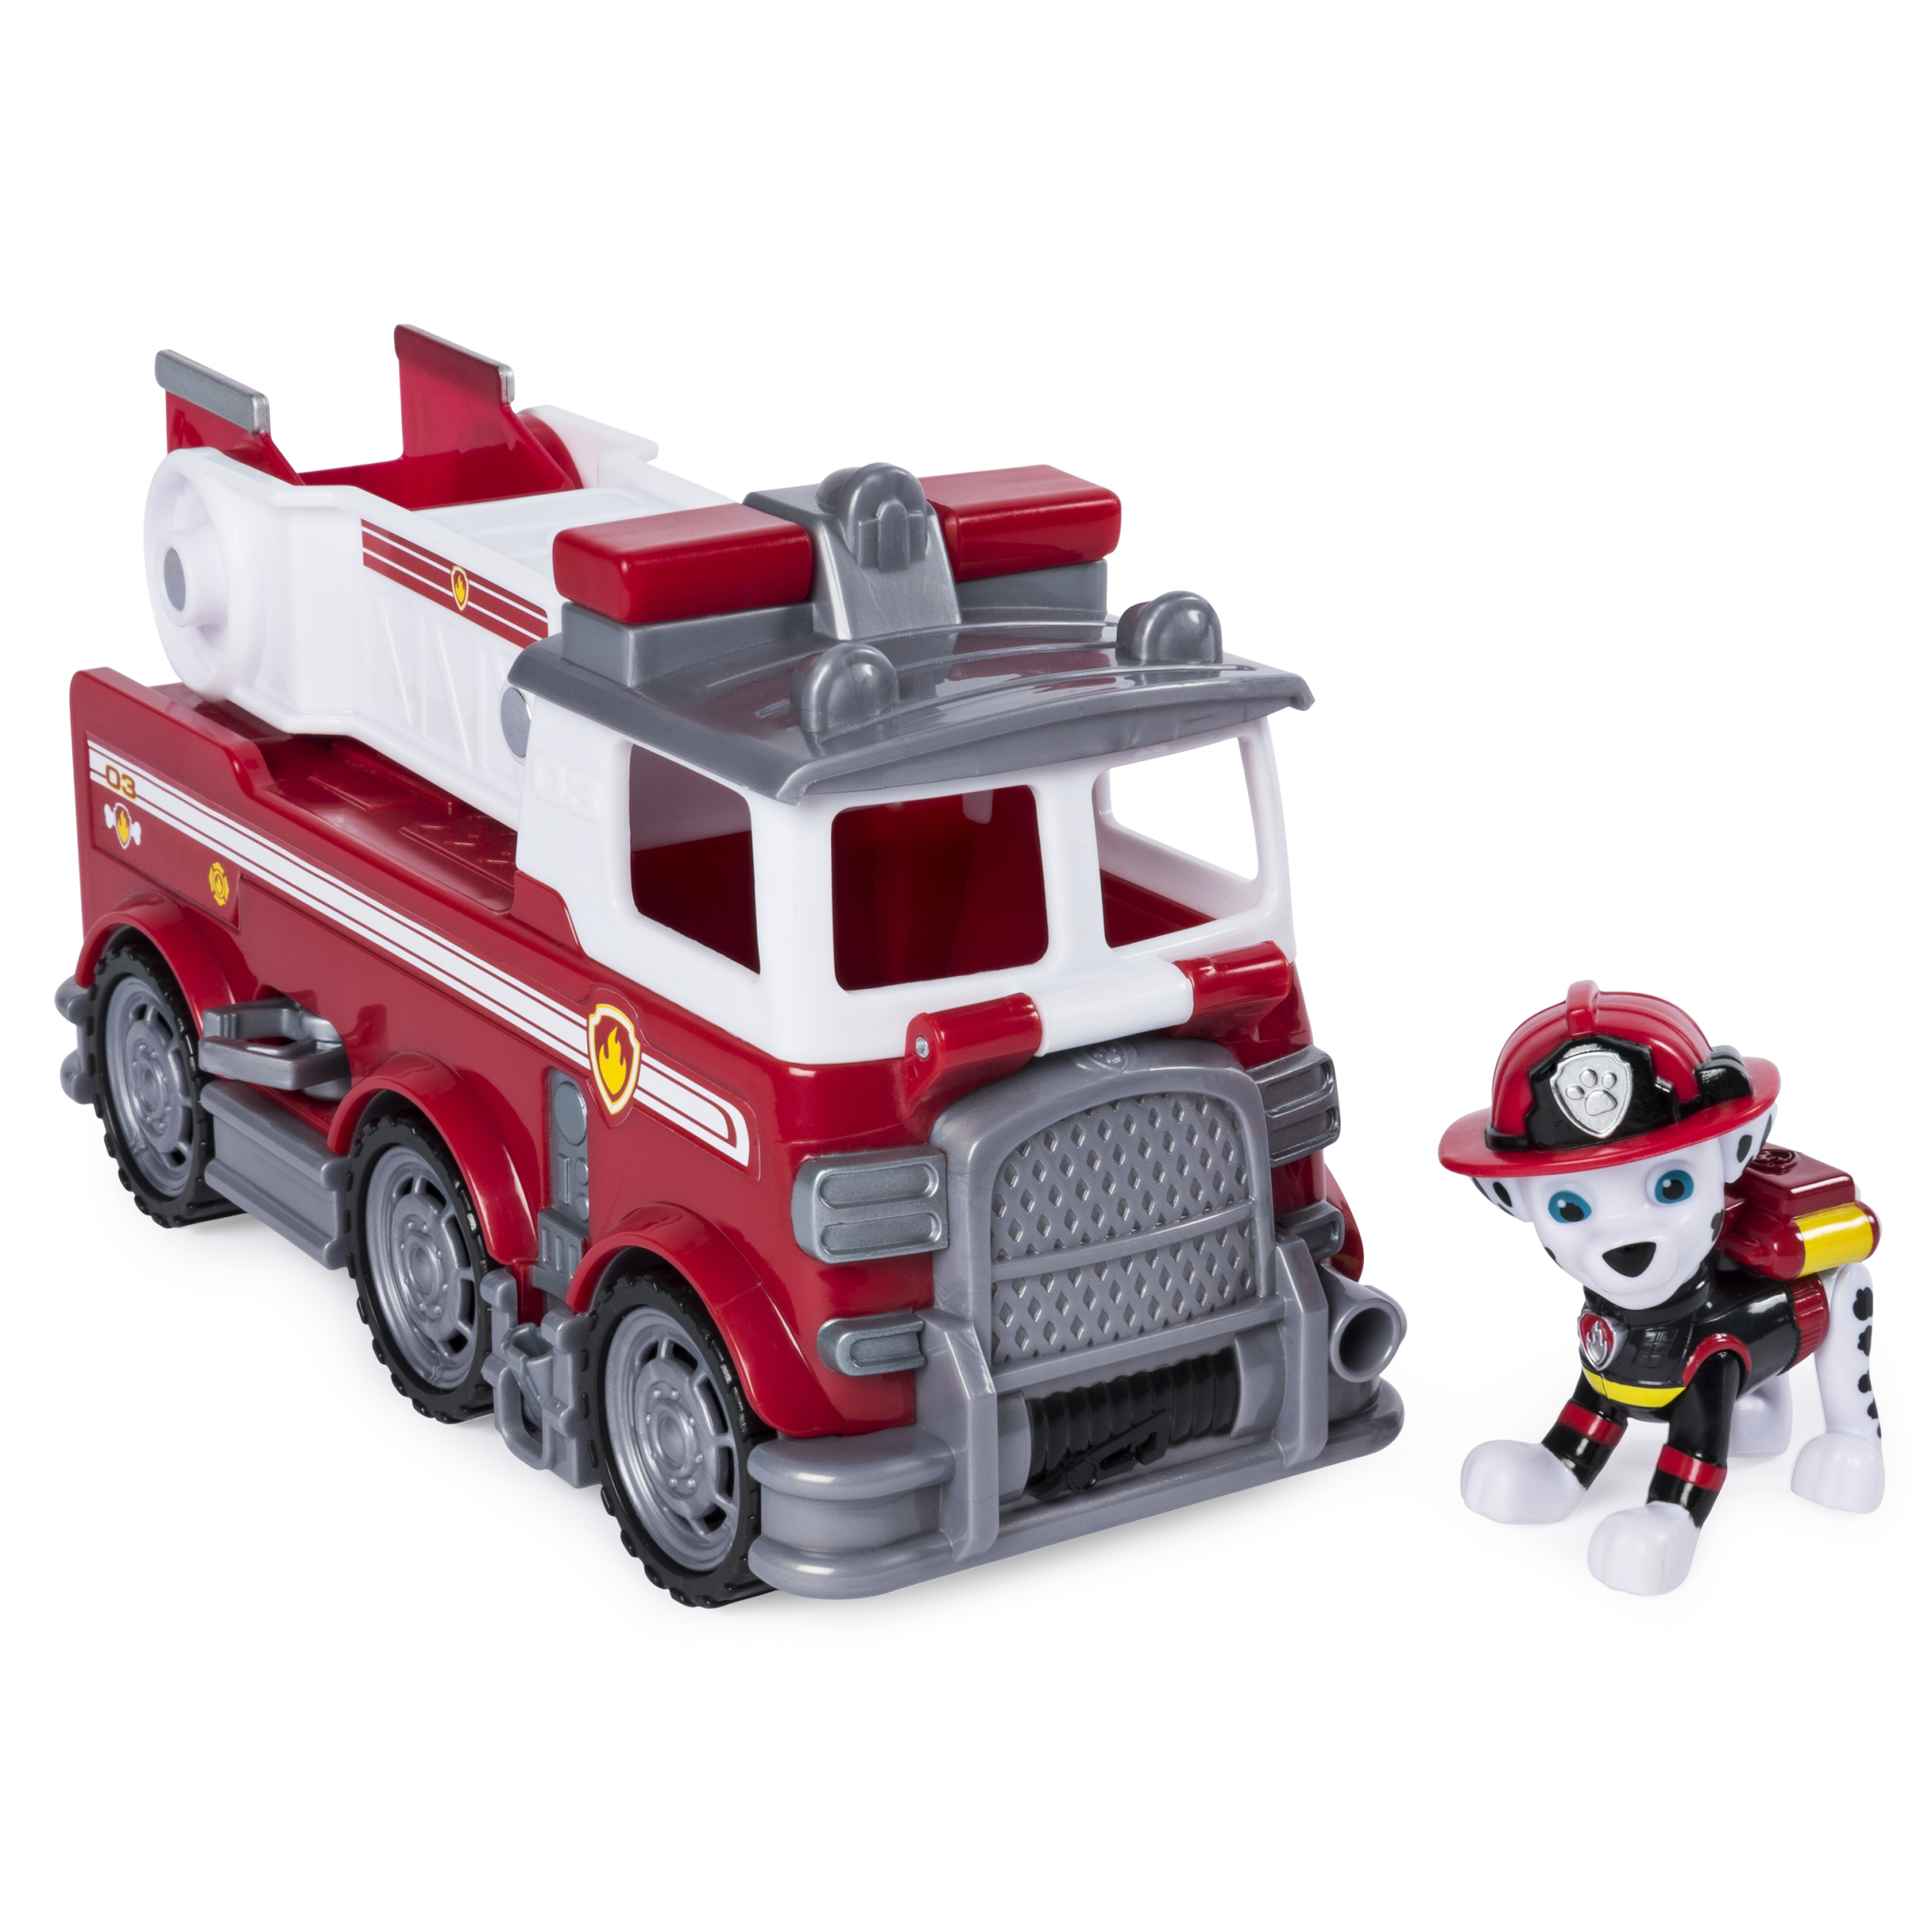 PAW Patrol Ultimate Rescue, Marshall?s Ultimate Rescue Fire Truck with Moving Ladder and Flip-open Front Cab, for Ages 3 and Up